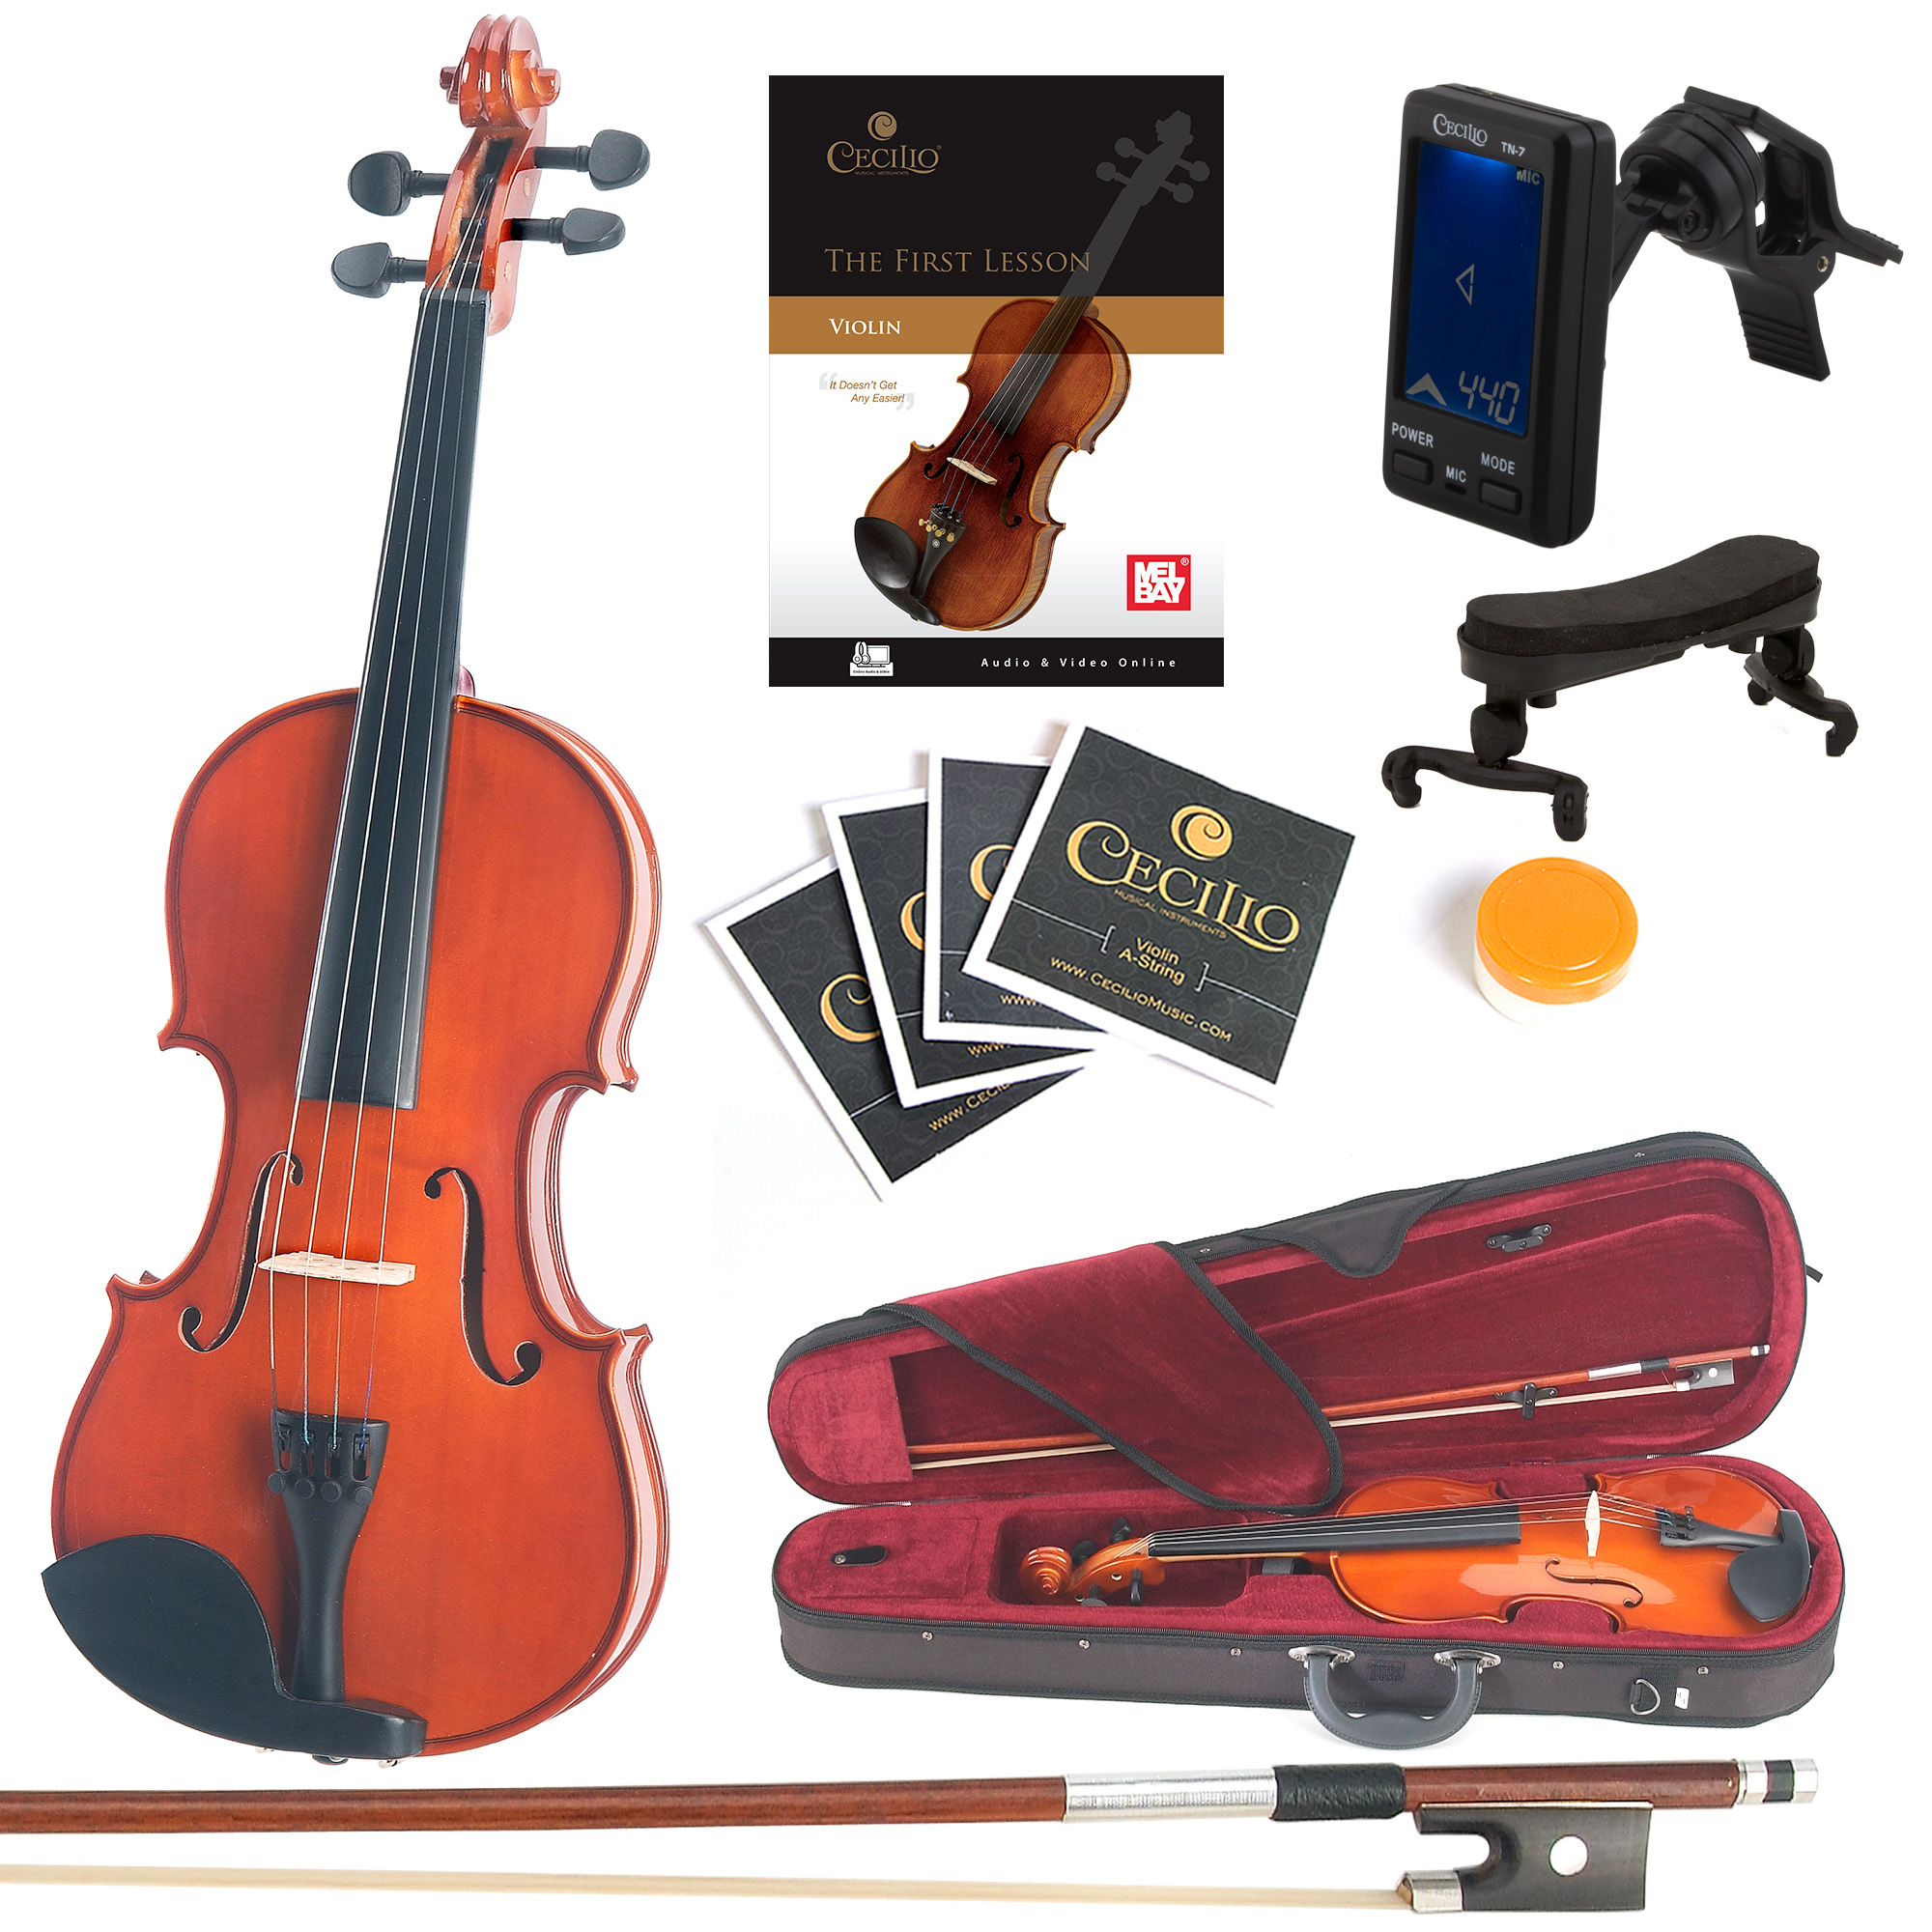 Mendini Full Size 4/4 MV200 Solid Wood Violin w/Tuner, Lesson Book, Shoulder Rest, Extra Strings, Bow, 2 Bridges & Case, Natural Varnish